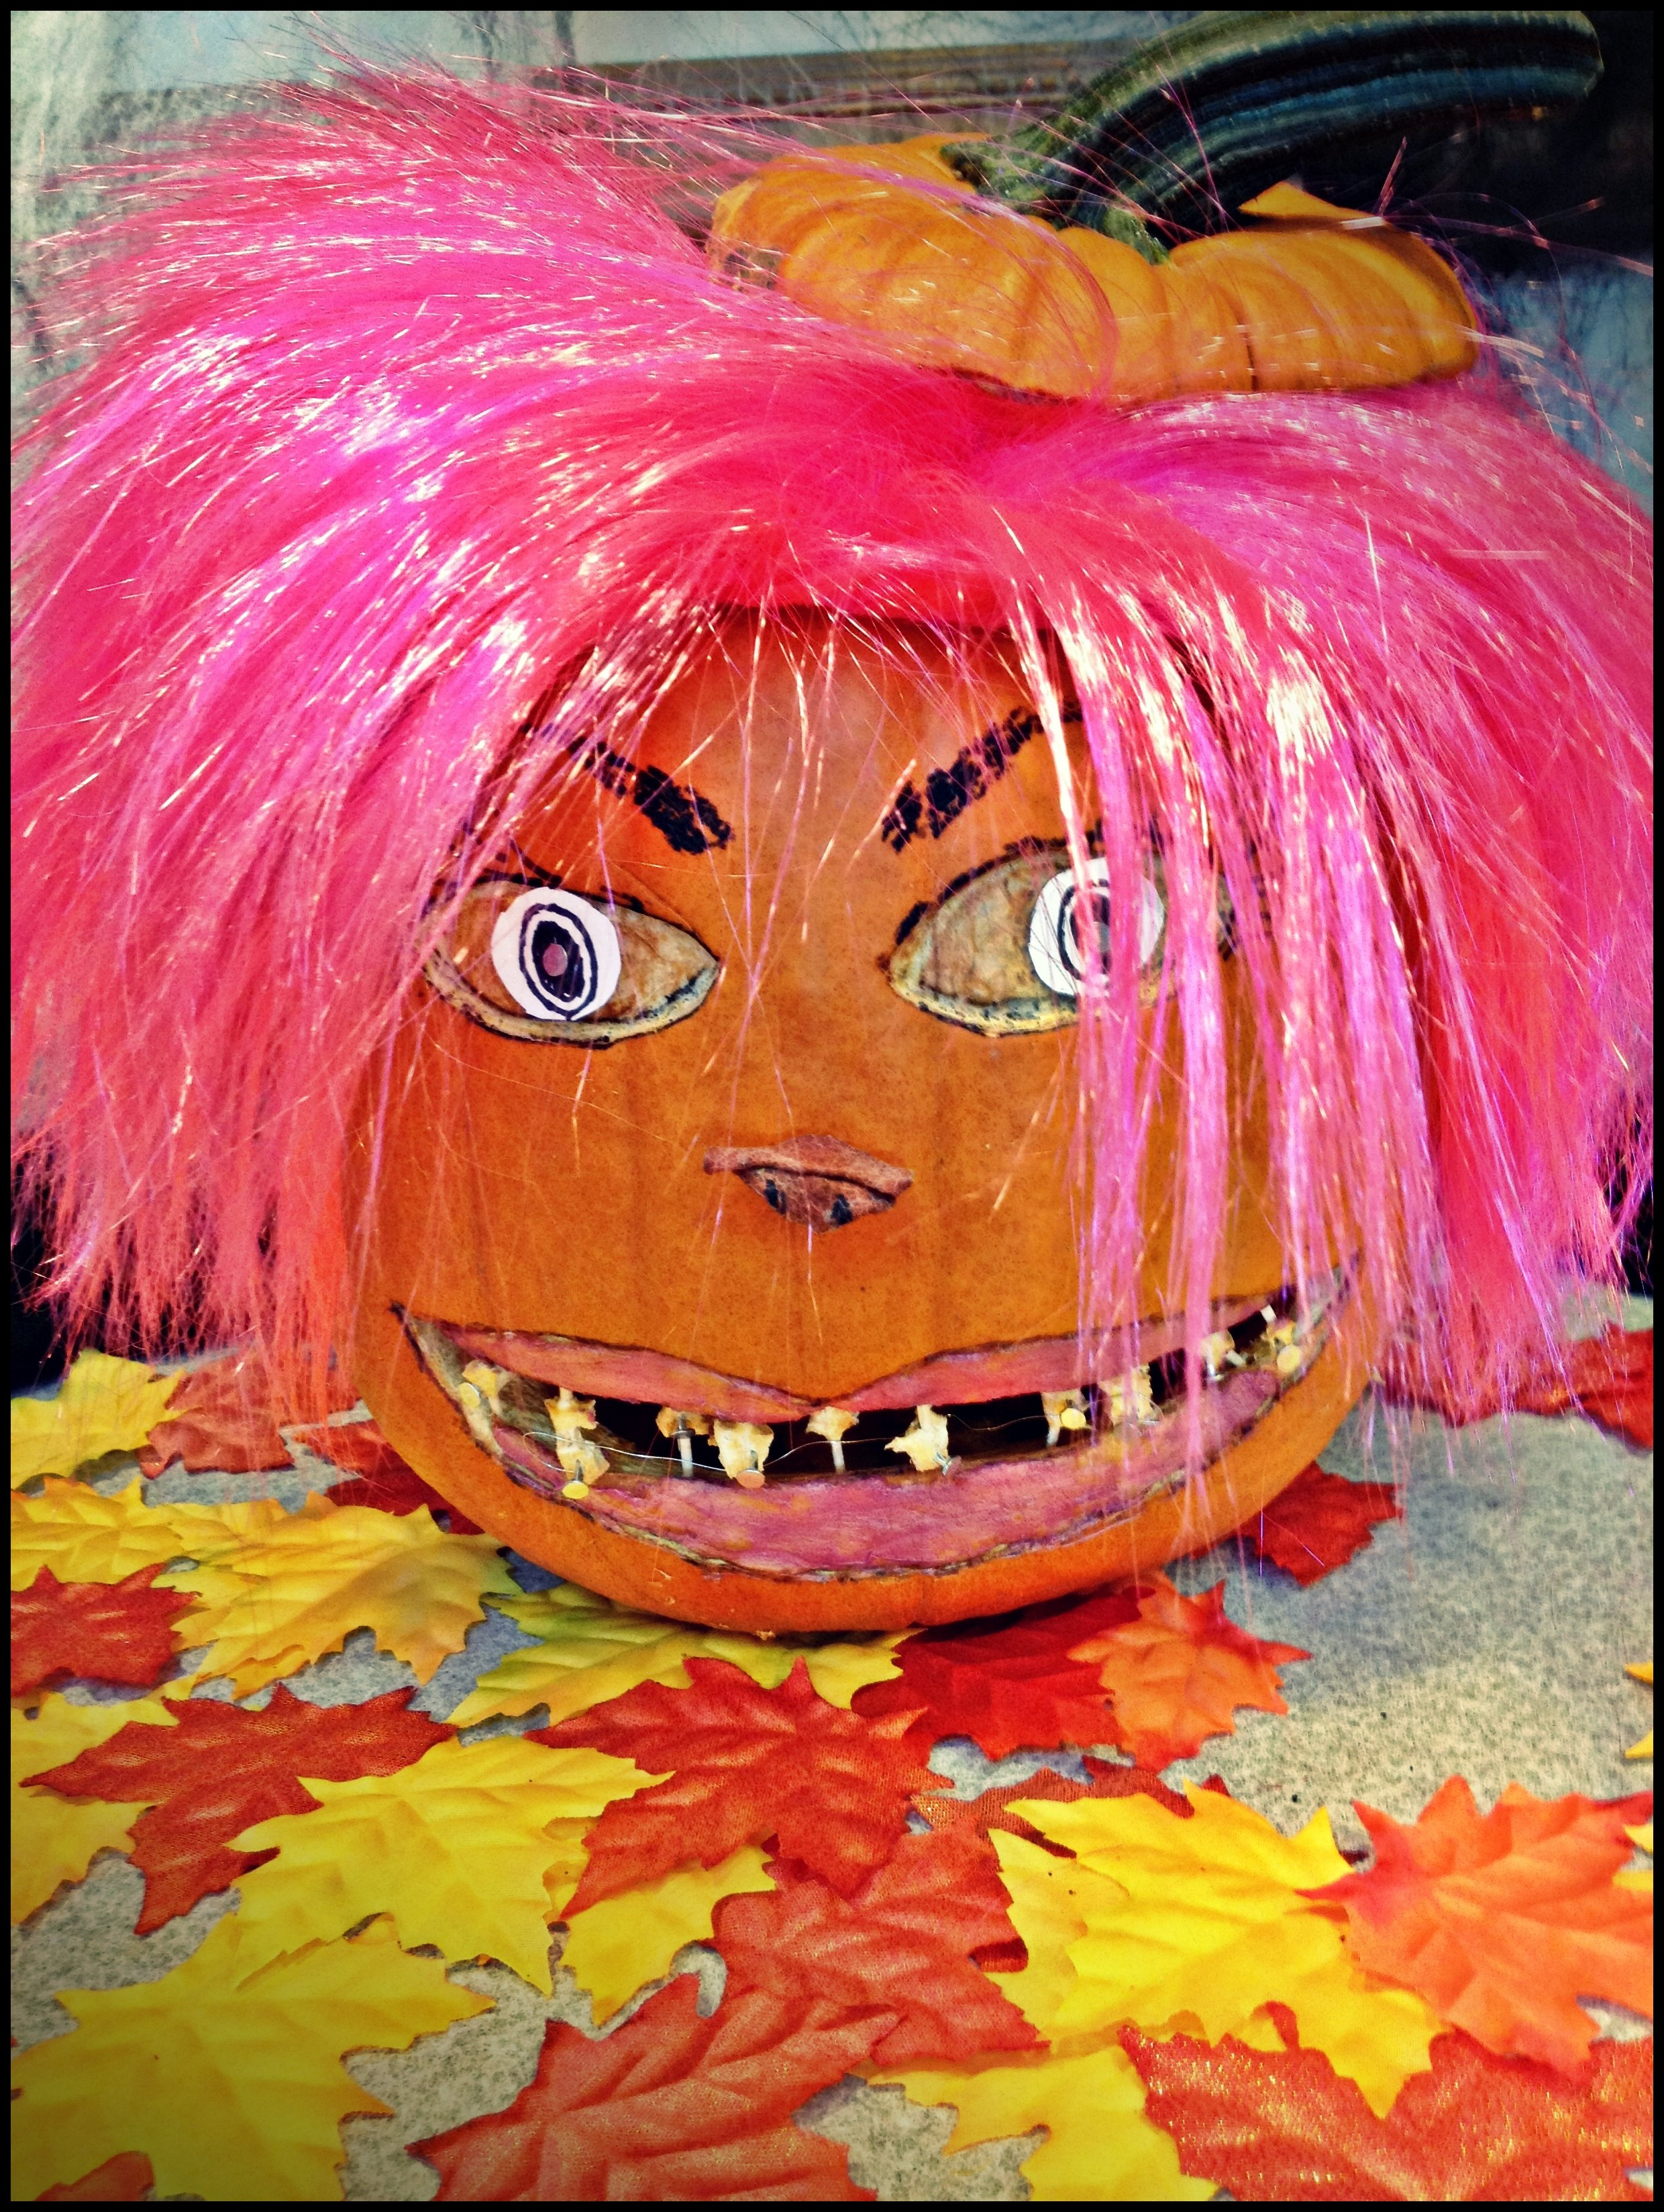 Pamela Pumpkin needs dental work!